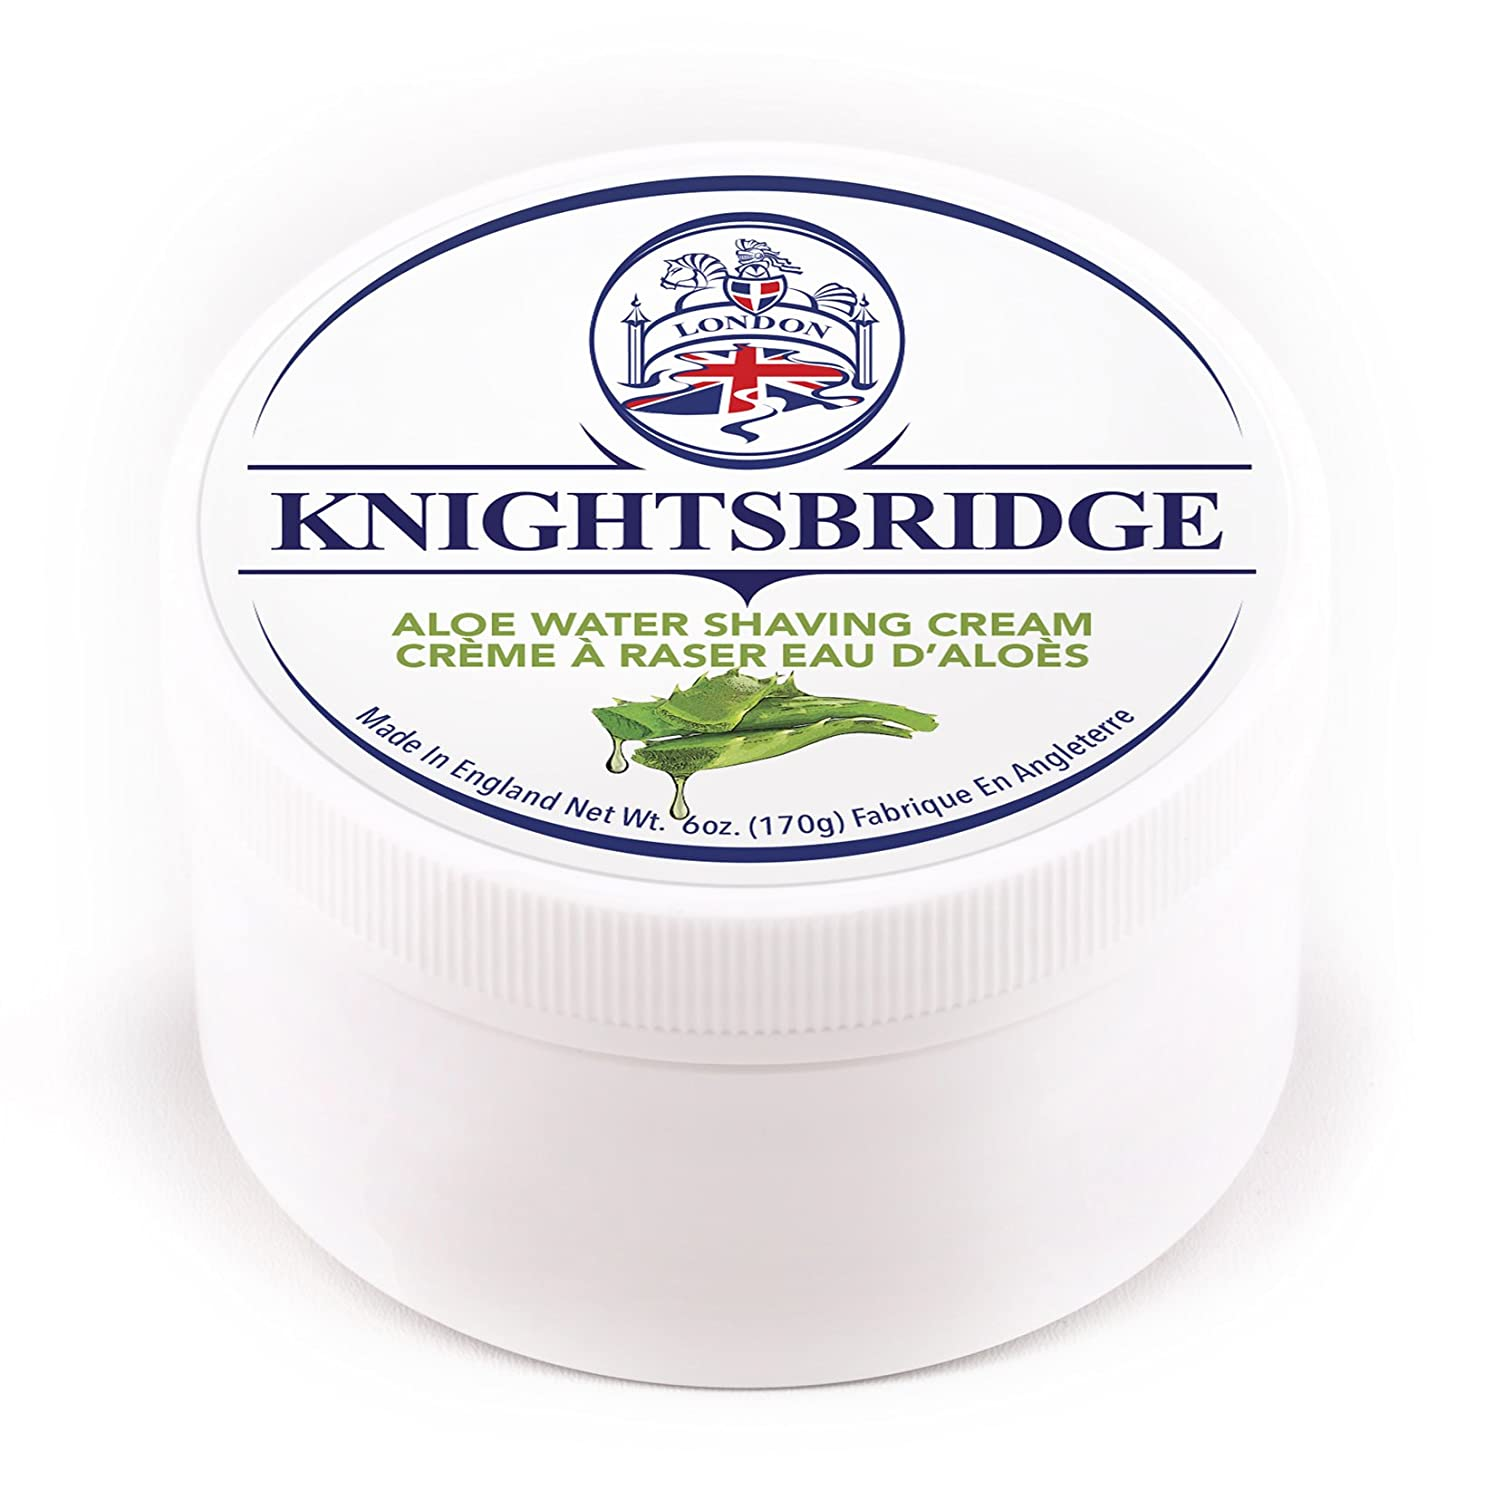 Knightsbridge - Signature Shaving Cream 170g